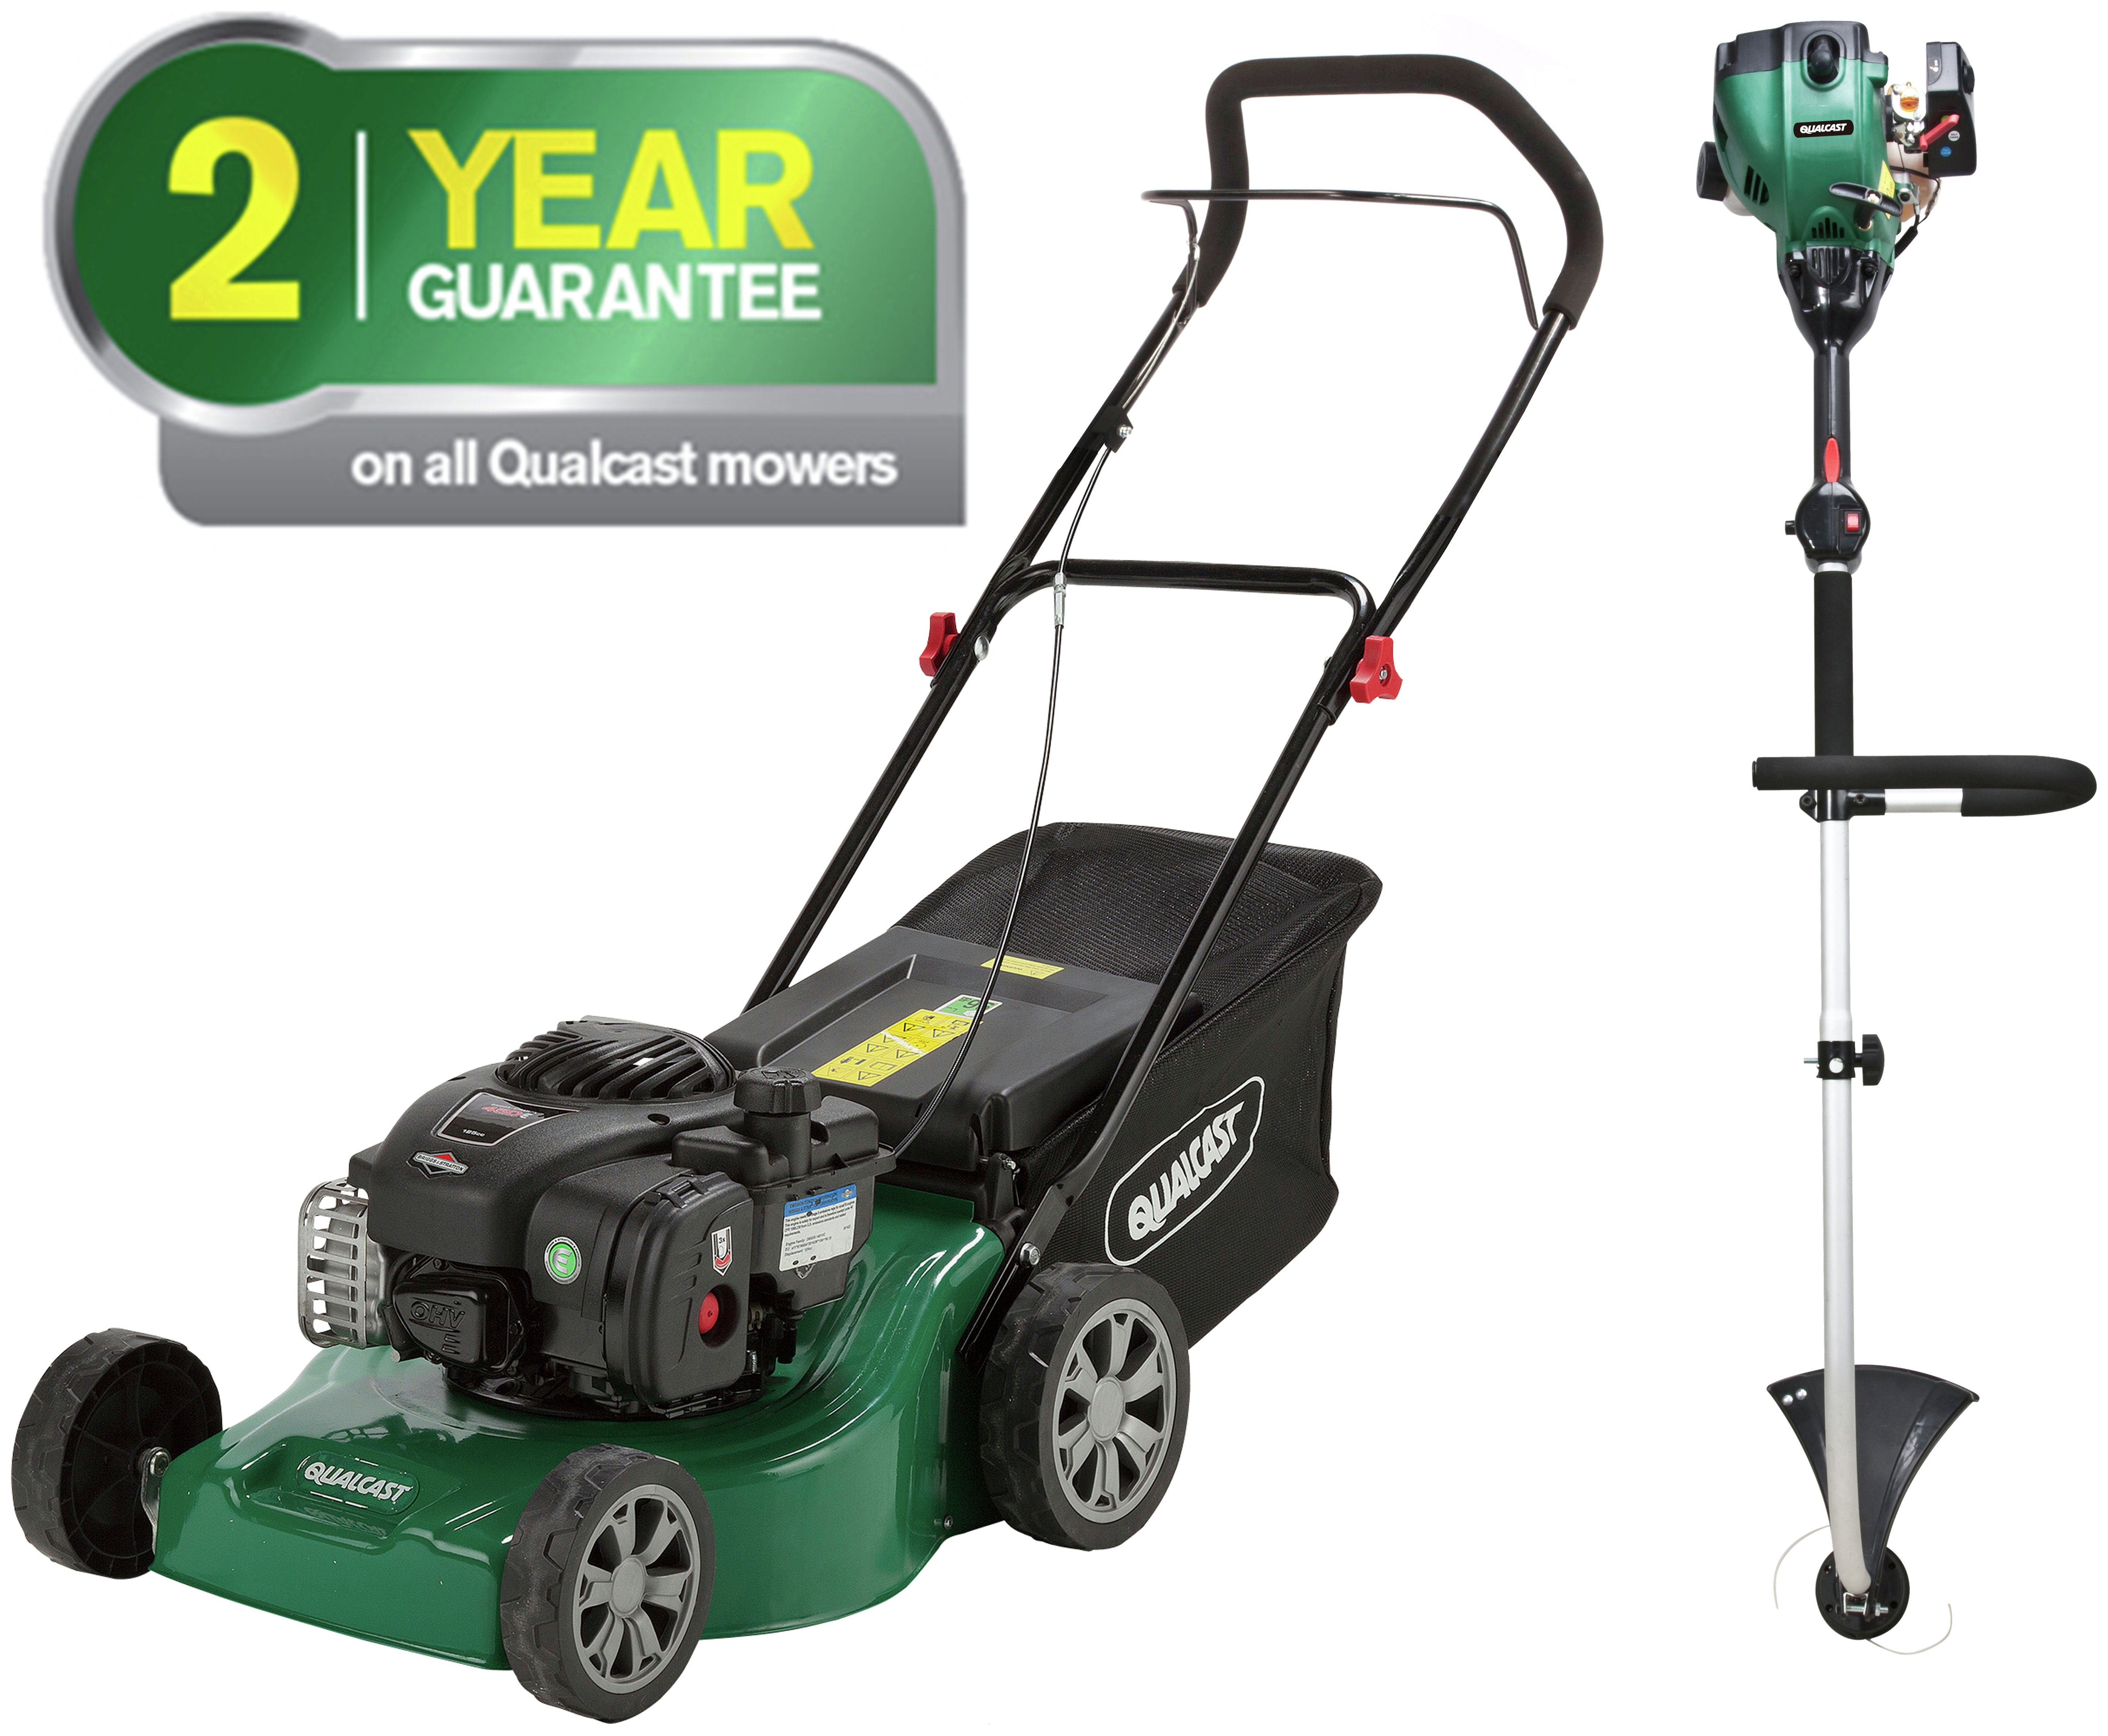 buy bosch hedge trimmers and accessories at your online shop for home and garden. Black Bedroom Furniture Sets. Home Design Ideas